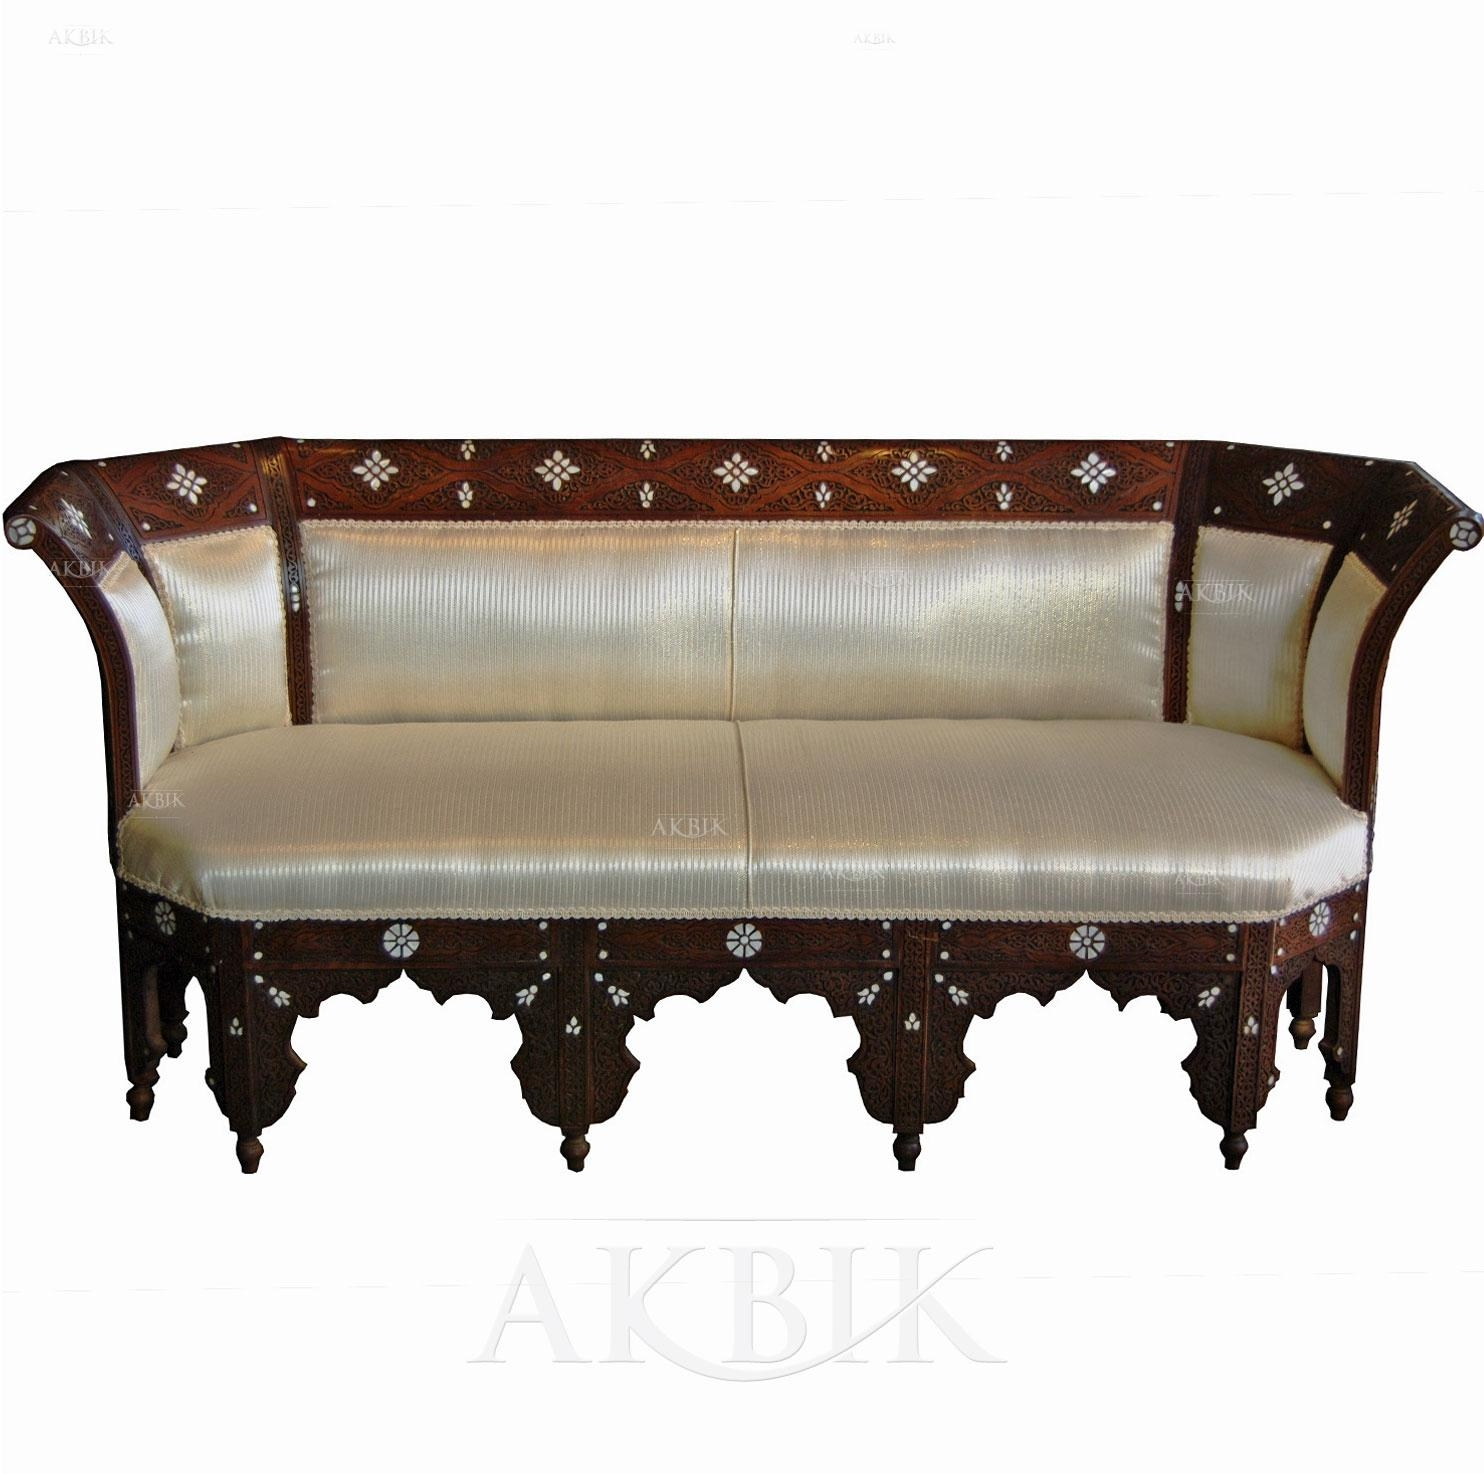 Mediterranean, Levantine & Syrian Furniture Inlaid With Mother Of Regarding Bench Style Sofas (Image 13 of 20)